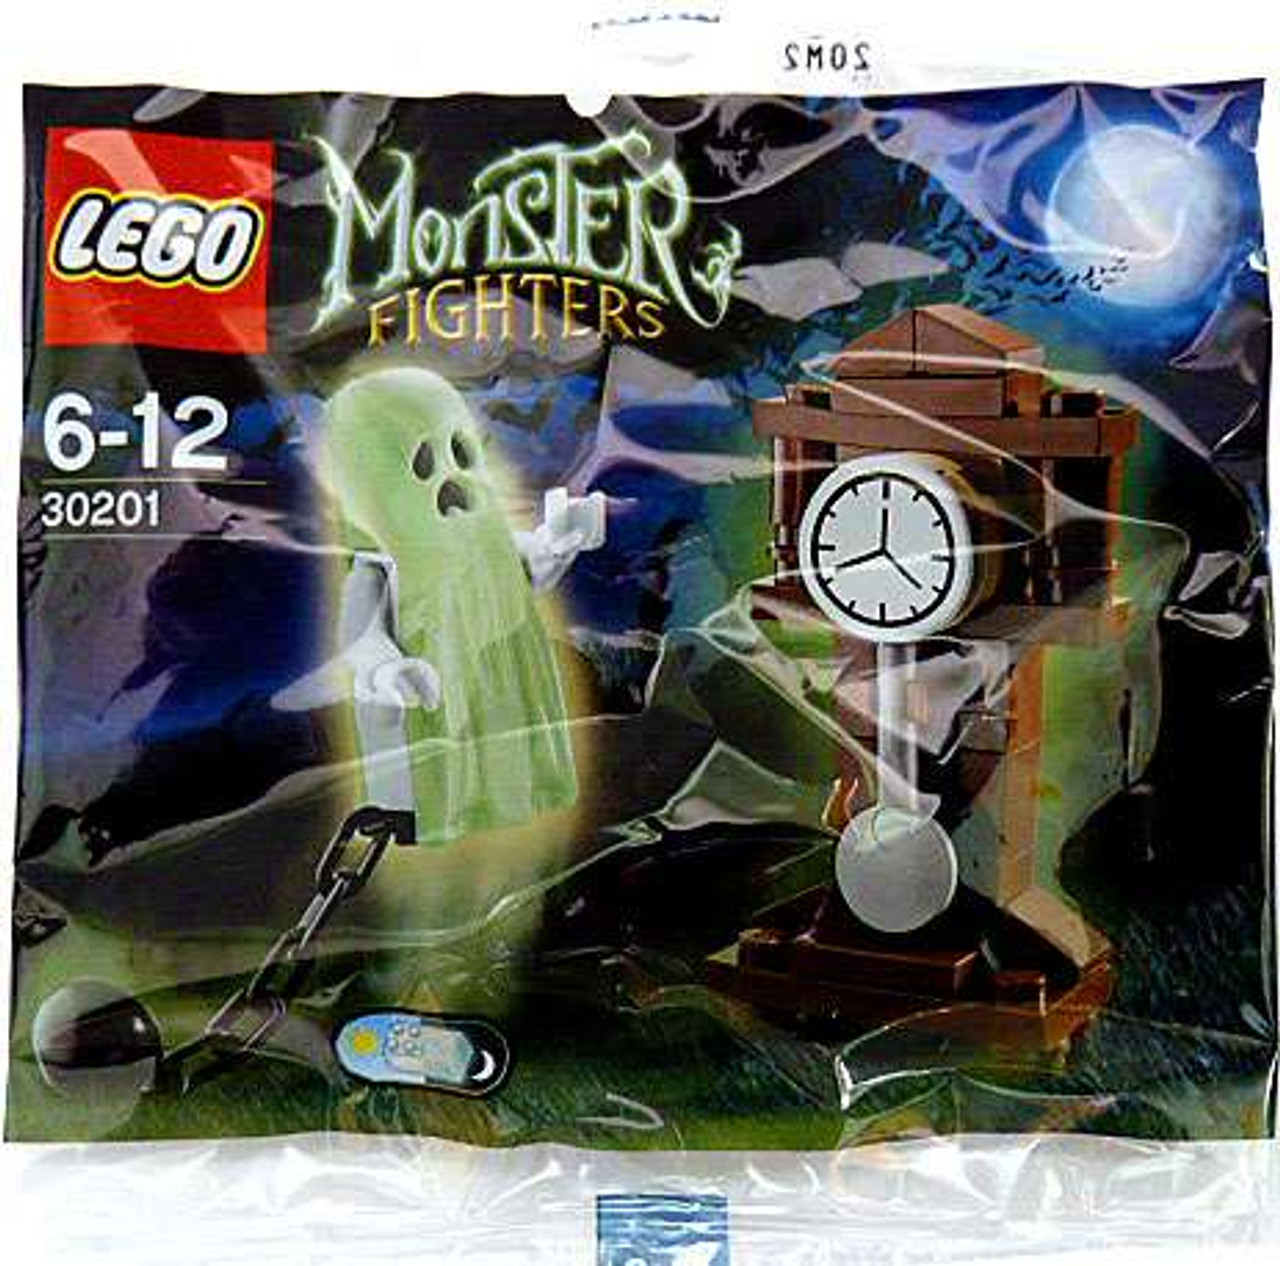 LEGO Monster Fighters Ghost & Grandfather Clock Mini Set #30201 [Bagged]